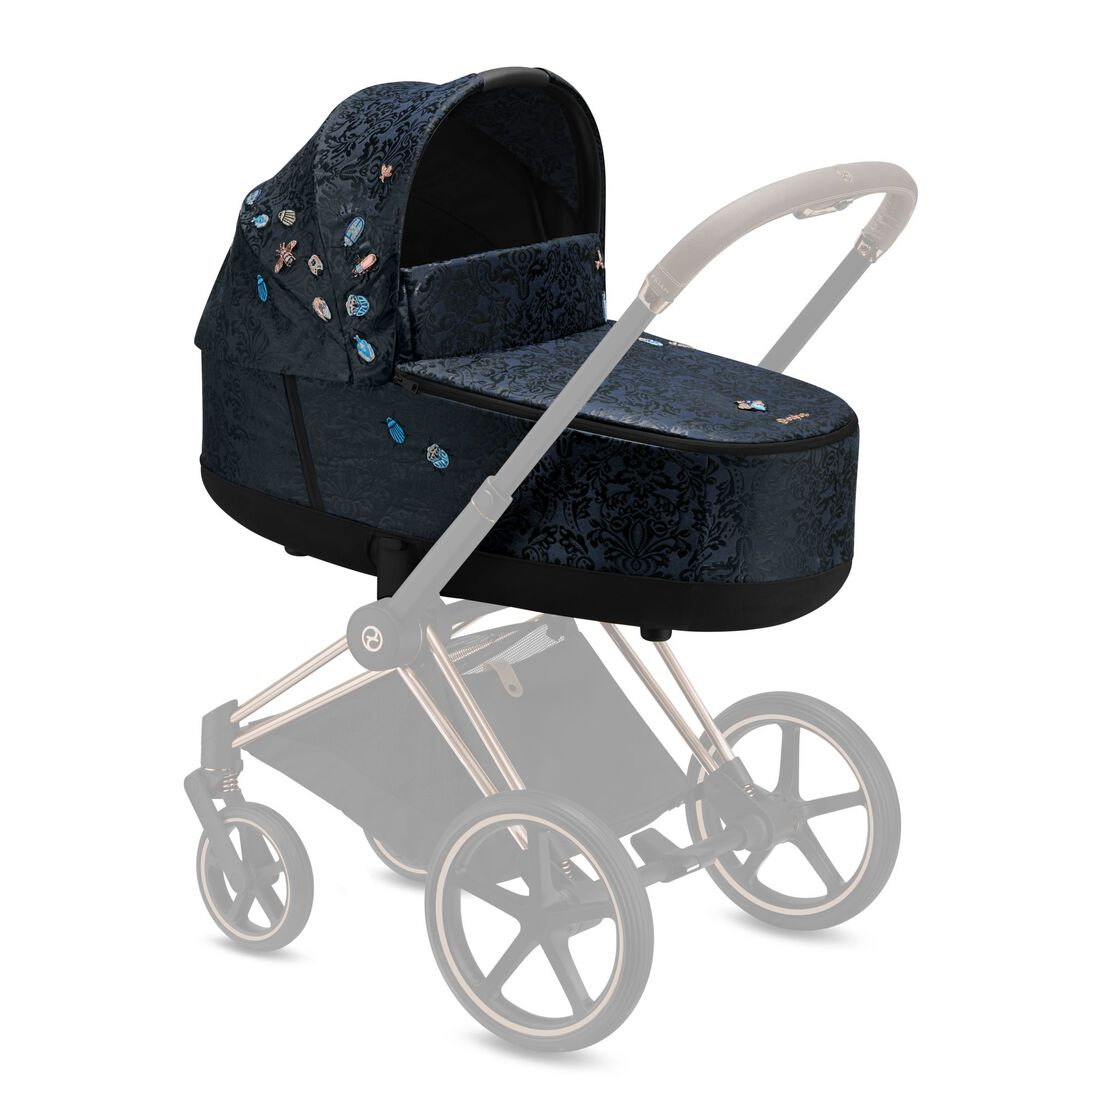 CYBEX Priam Lux Carry Cot - Jewels of Nature in Jewels of Nature large Bild 4